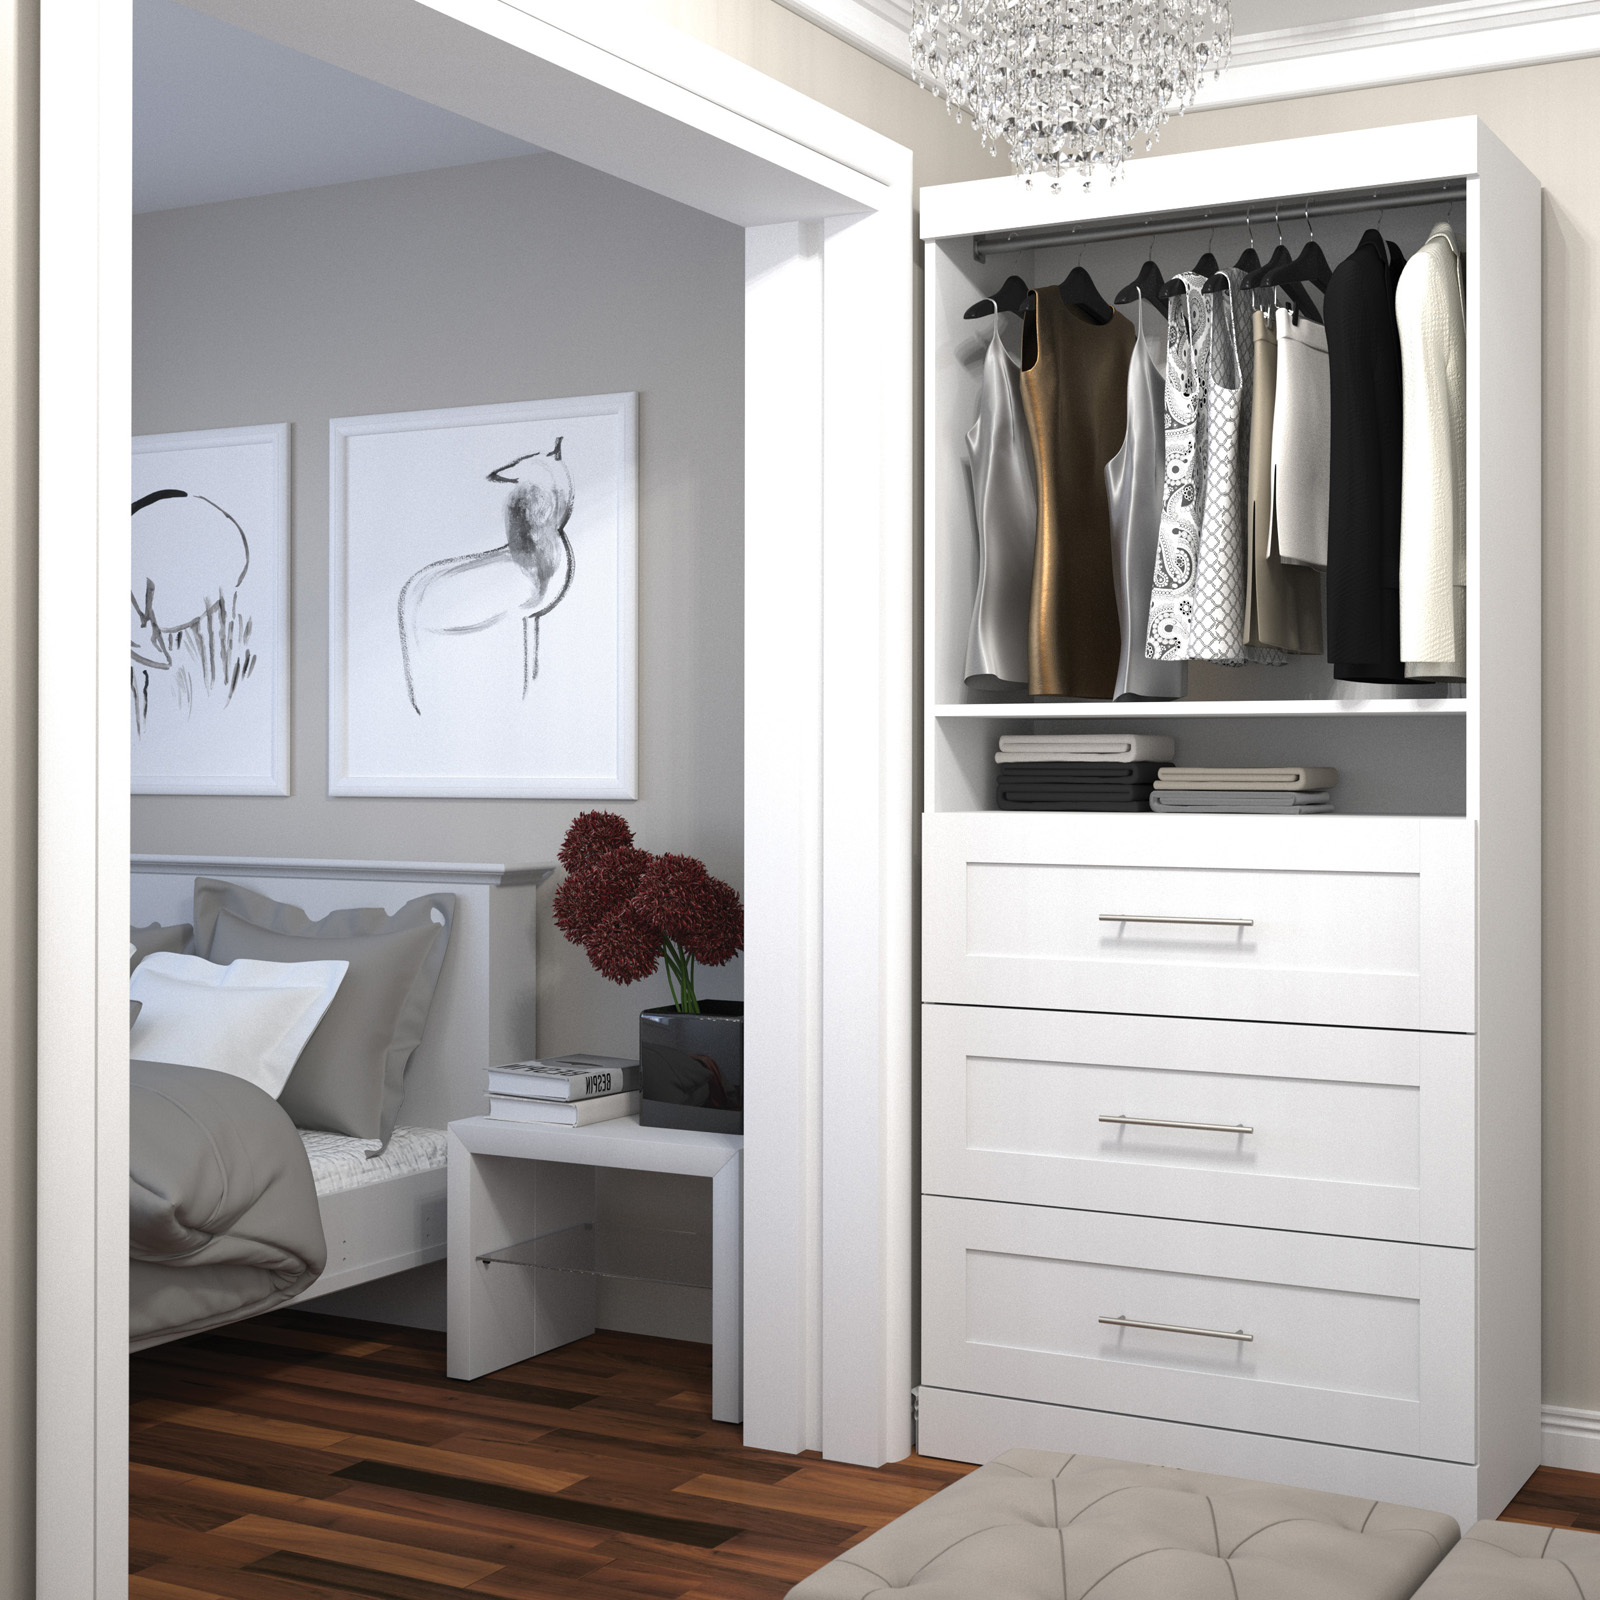 drawer ideas appealing house organizer your steel with design white for drawers offer interior shelves and furniture also small pole closet silver wooden organization wonderful